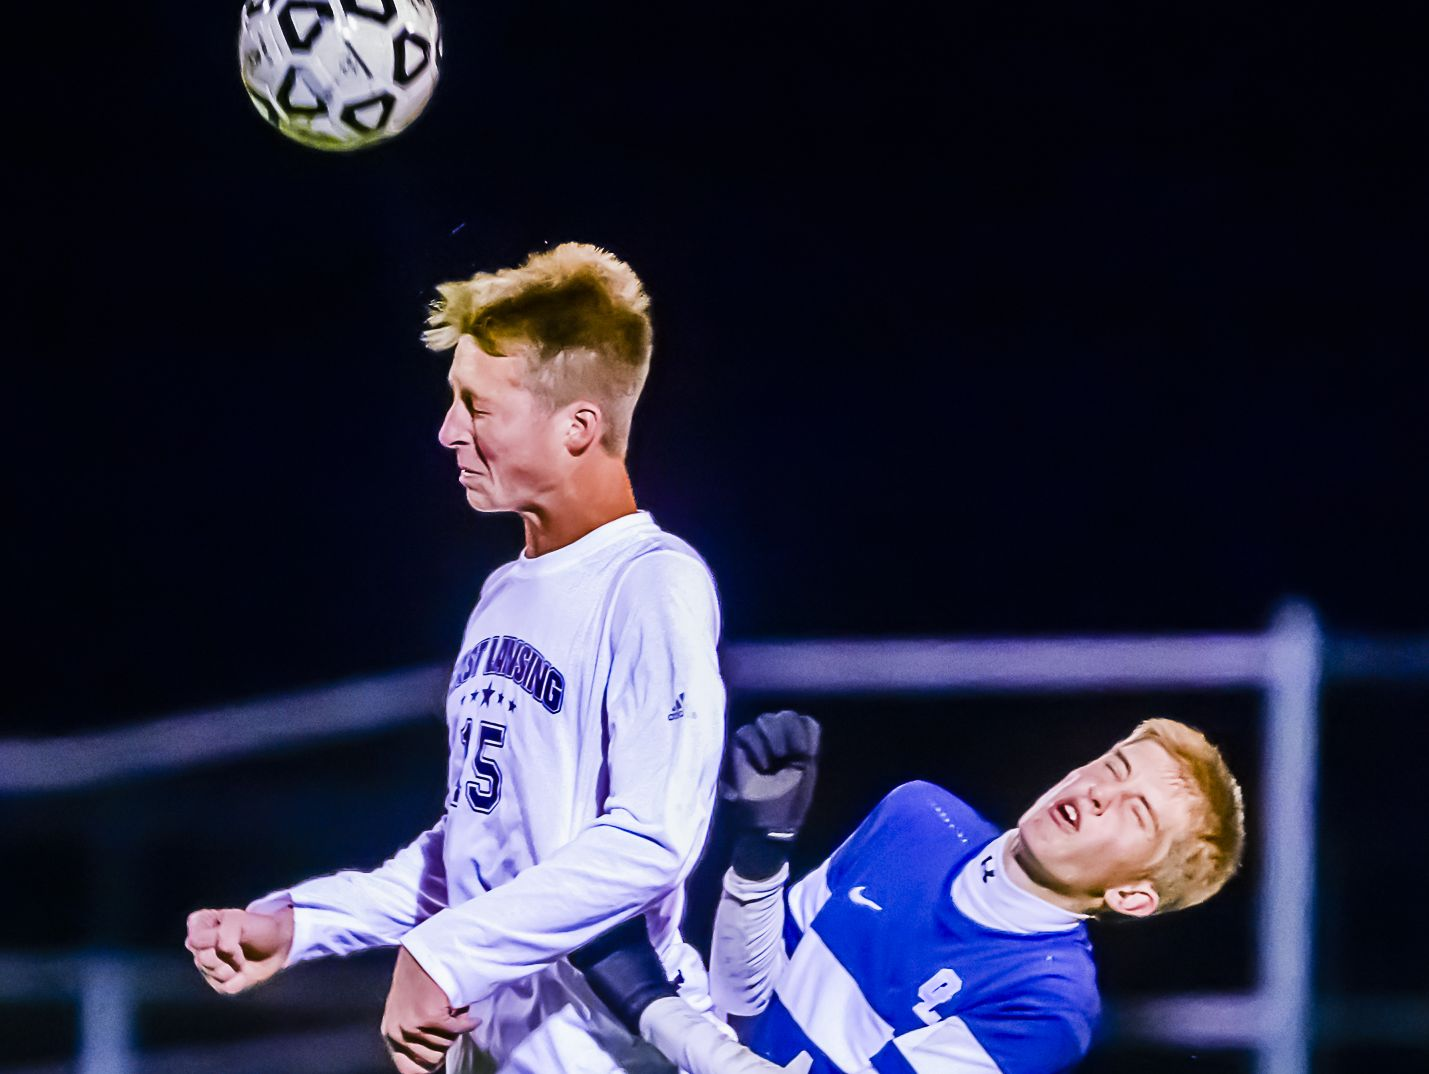 Grand Ledge's Aric Phinney, right, and East Lansing's Andrew Person collide during the CAAC Gold Cup final last year. Grand Ledge is the Gold Cup top seed and East Lansing is the No. 4 seed this fall.